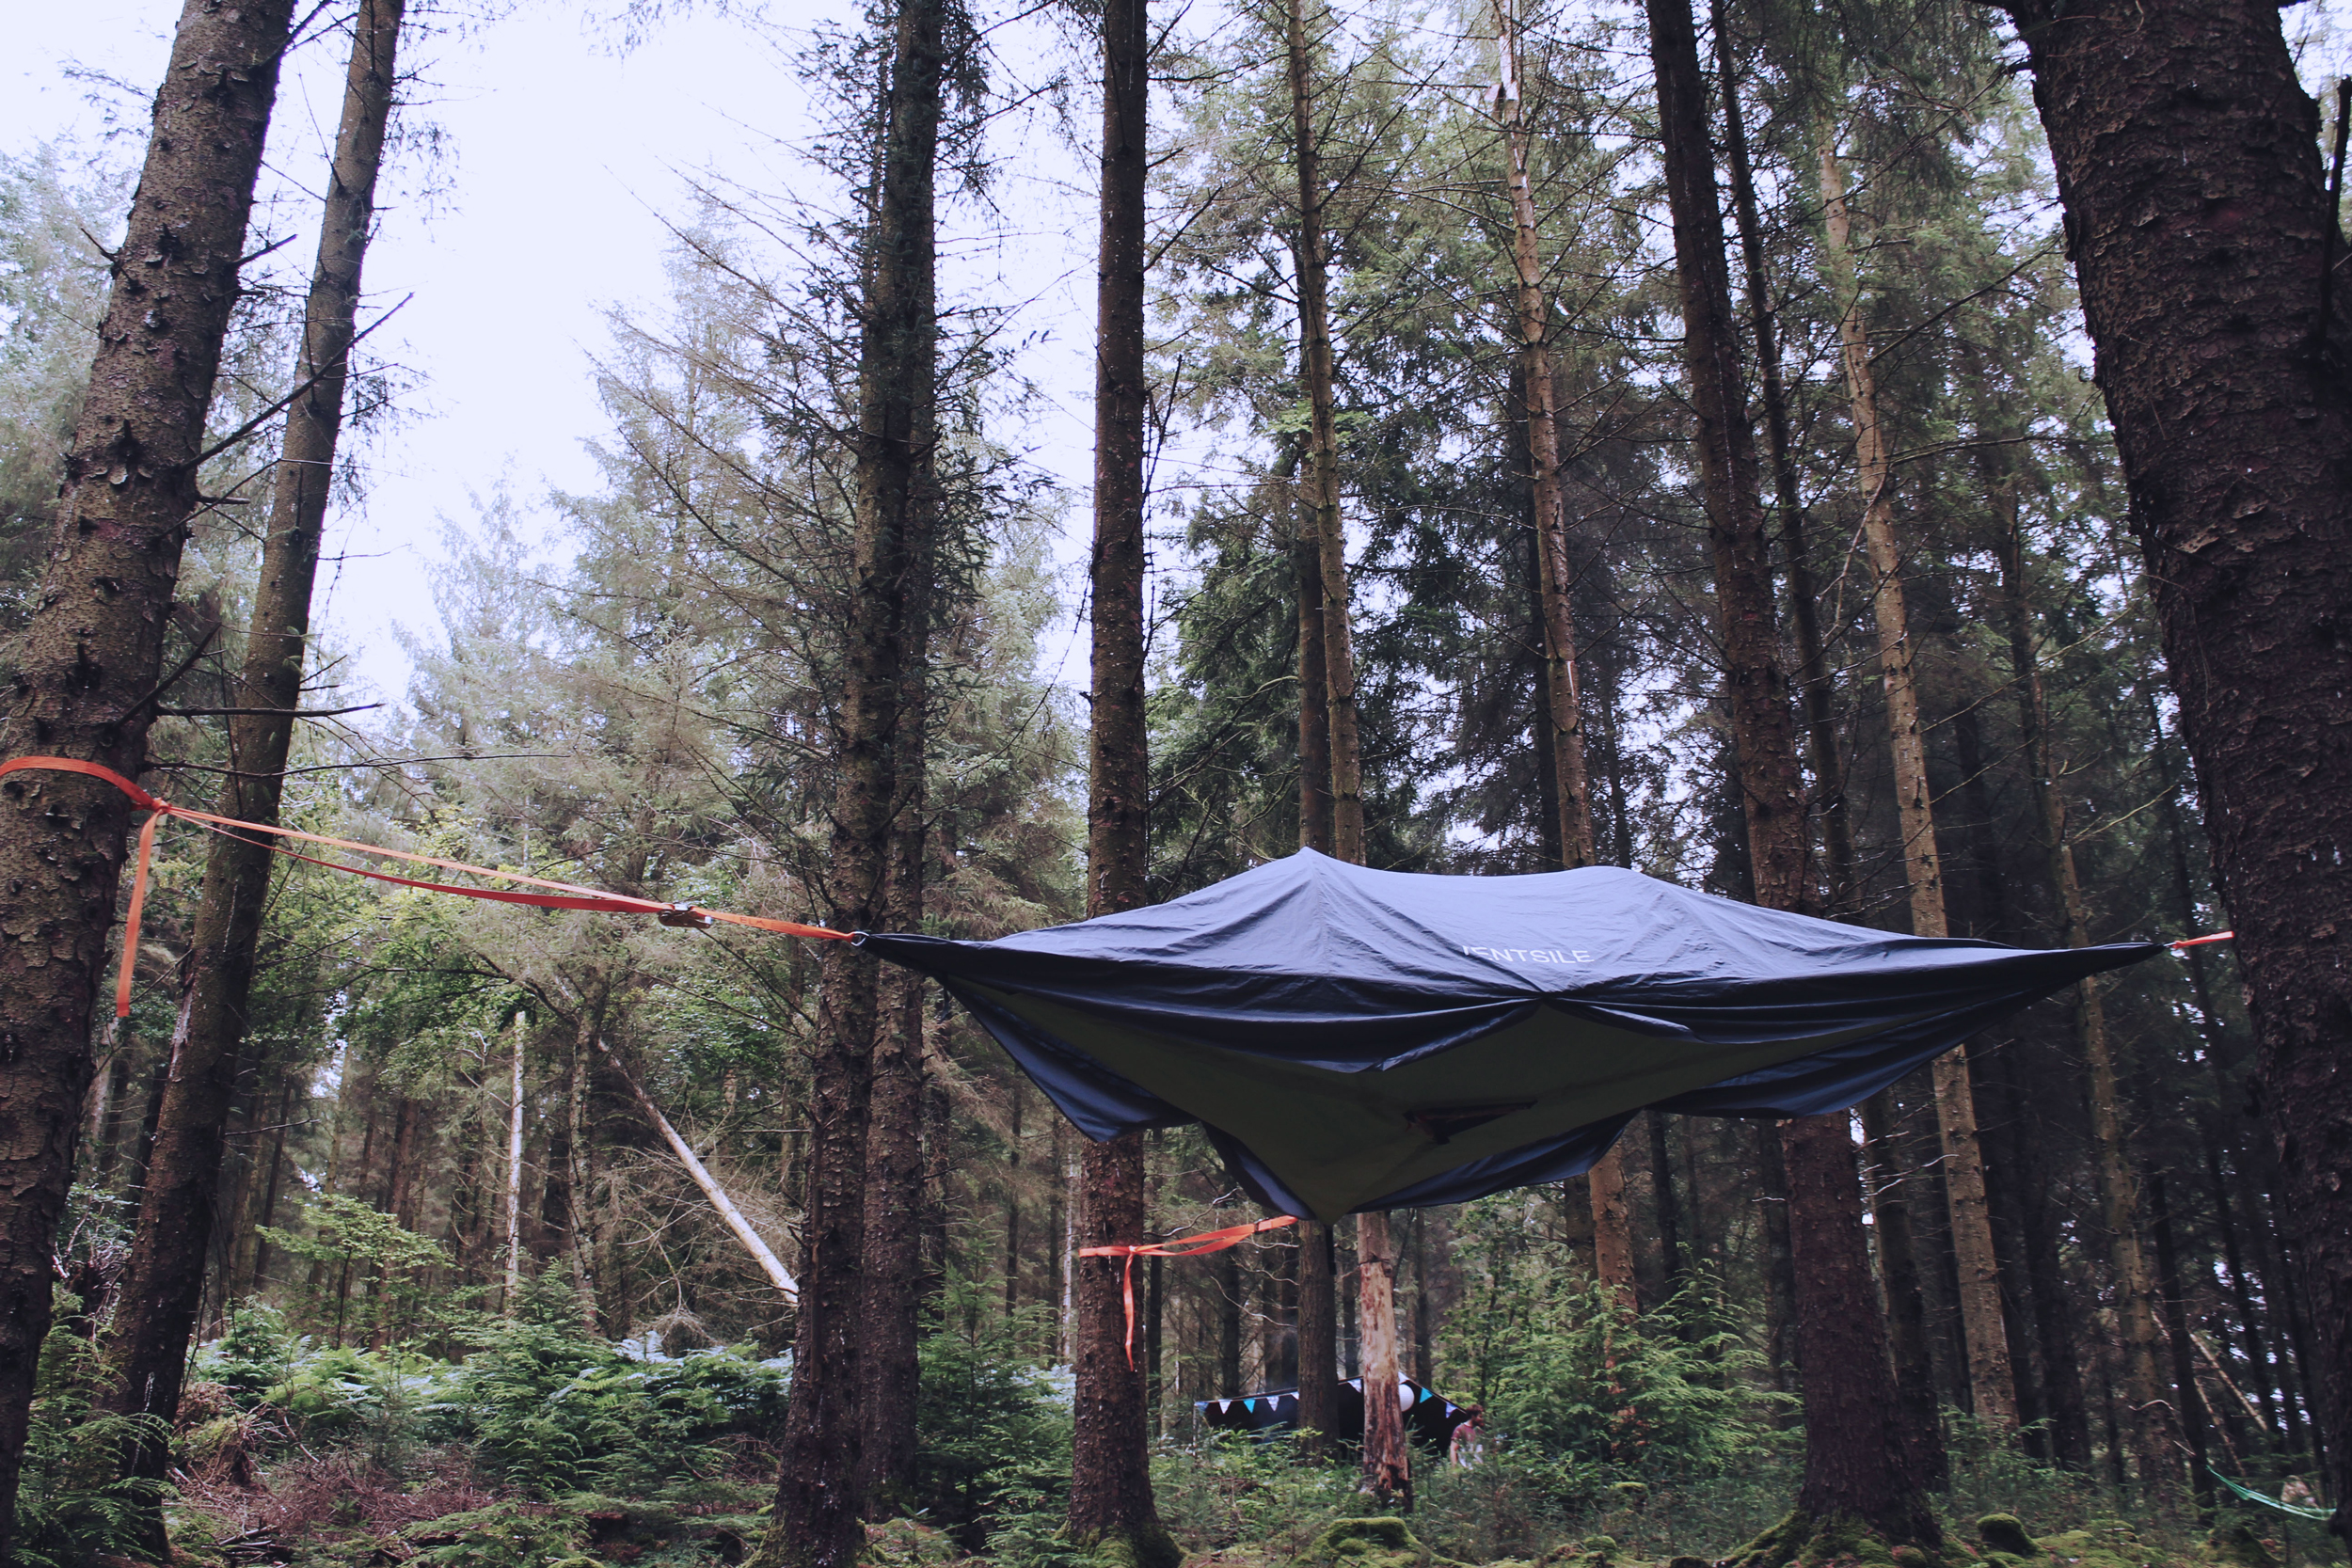 Treetop camping in the pine forest, Devon